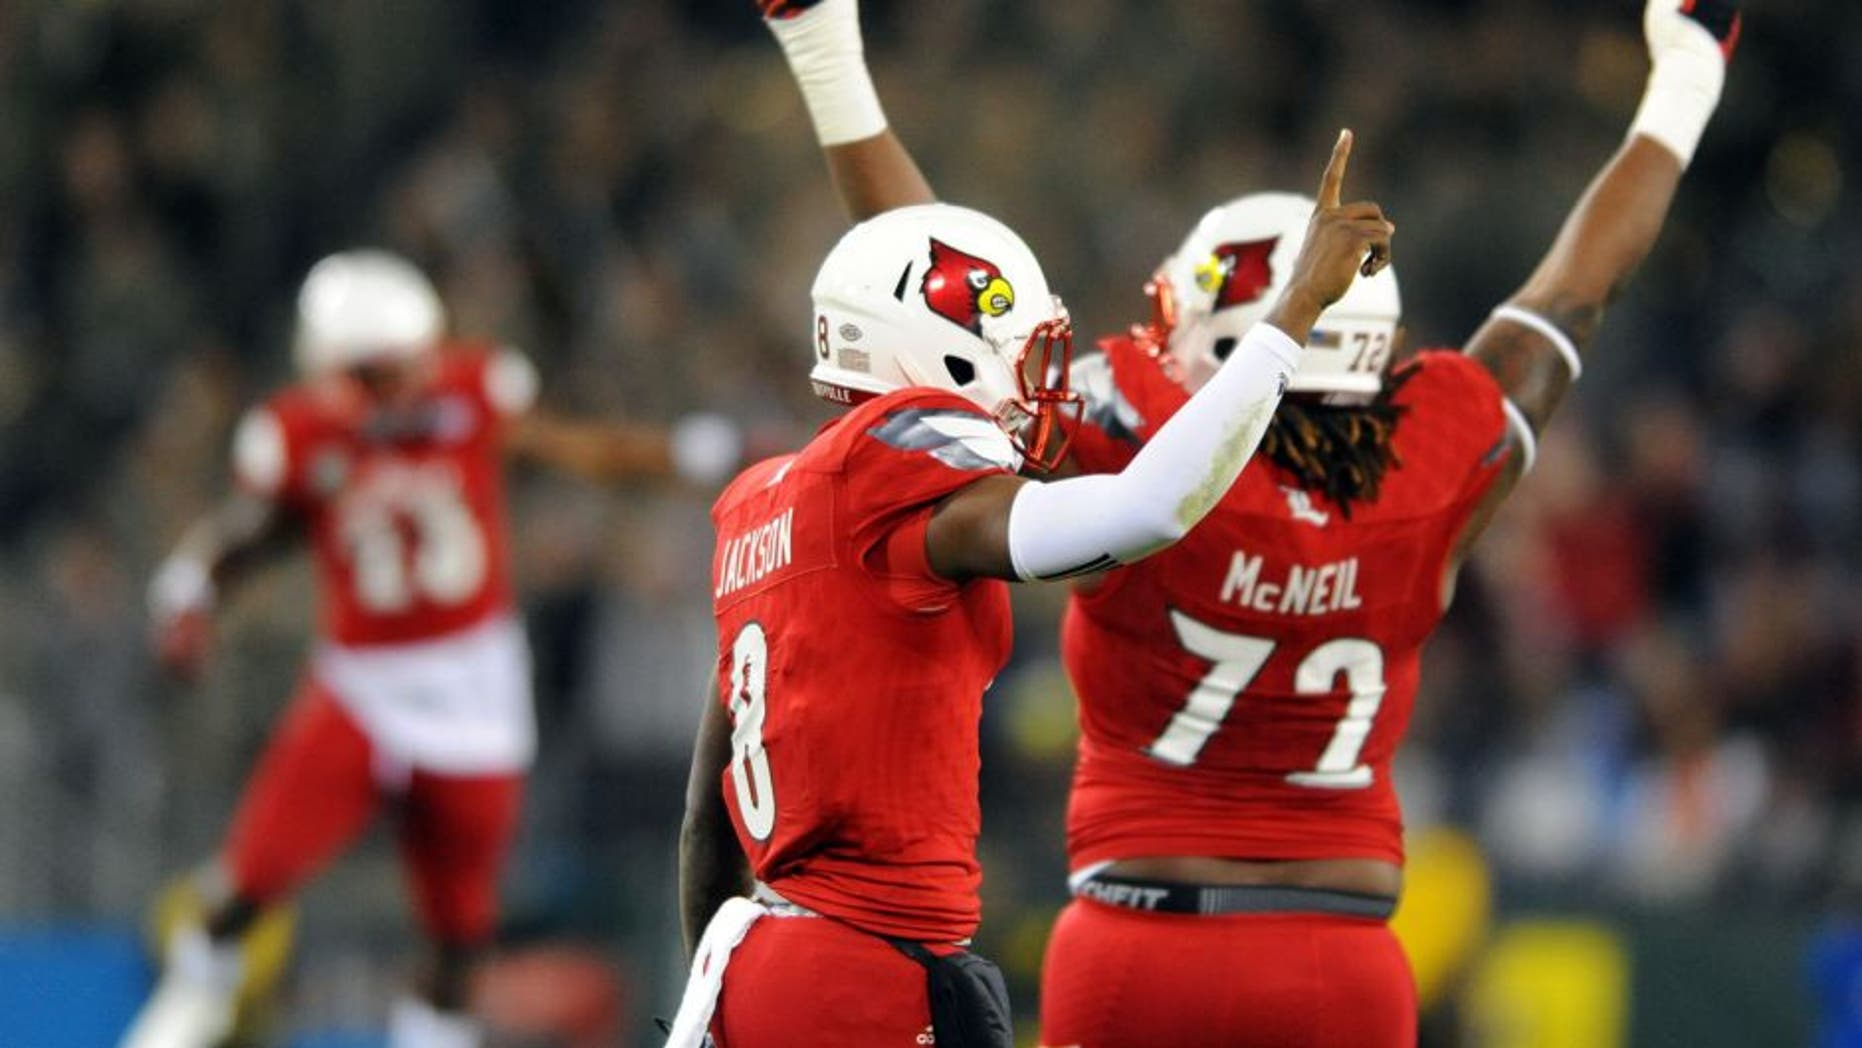 Dec 30, 2015; Nashville, TN, USA; Louisville Cardinals quarterback Lamar Jackson (8) celebrates after a 62-yard touchdown run during the first half against the Texas A&M Aggies in the 2015 Music City Bowl at Nissan Stadium. Mandatory Credit: Christopher Hanewinckel-USA TODAY Sports